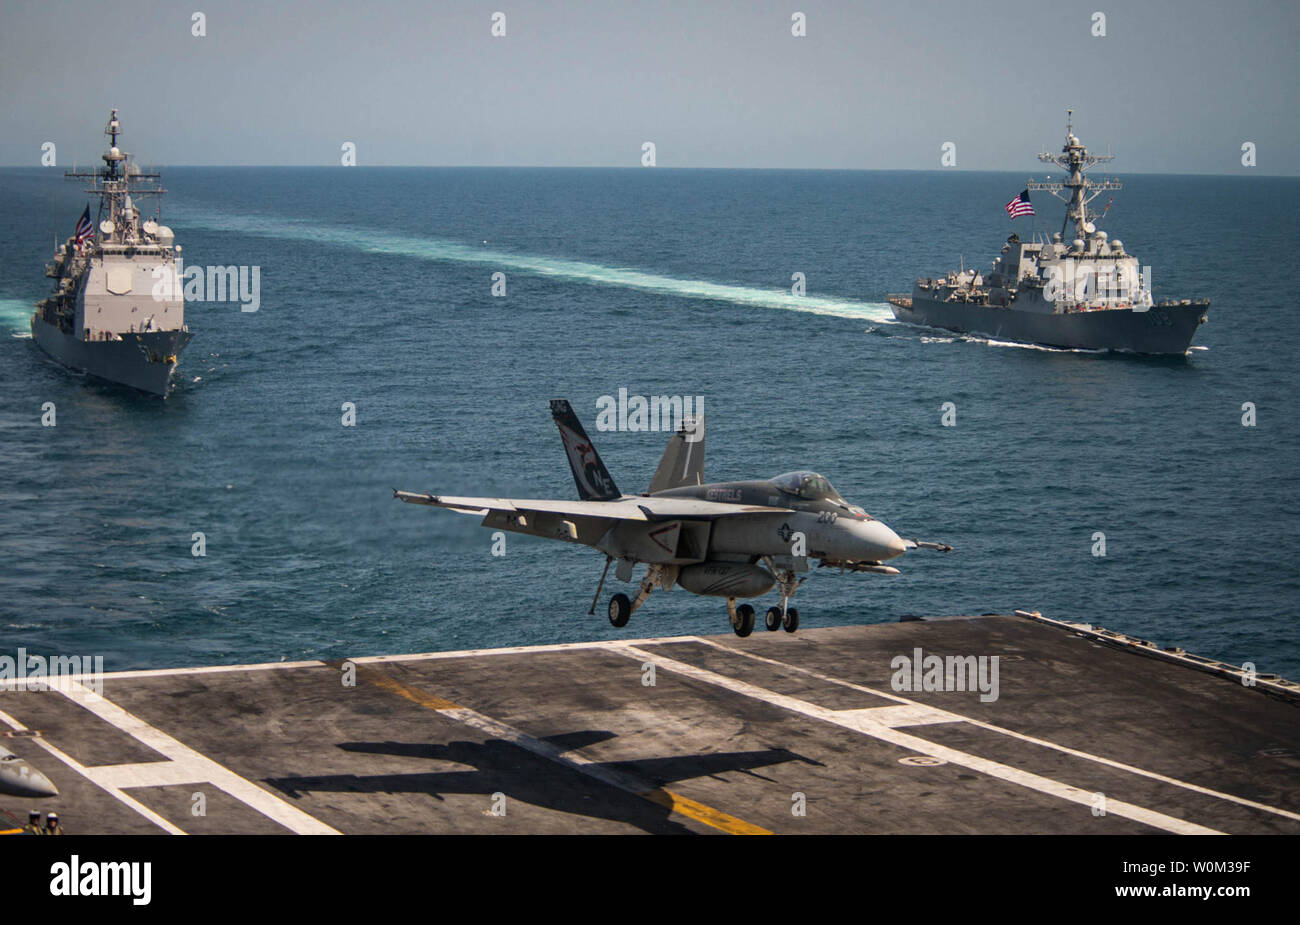 """An F/A-18E Super Hornet from the """"Kestrels"""" of Strike Fighter Squadron (VFA) 137 lands on May 3, 2017, on the flight deck of the Nimitz-class aircraft carrier USS Carl Vinson (CVN 70) as the Ticonderoga-class guided-missile cruiser USS Lake Champlain (CG 57), left, and the Arleigh Burke-class guided-missile destroyer USS Wayne E. Meyer (DDG 108) transit the western Pacific Ocean. The U.S. Navy has patrolled the Indo-Asia-Pacific routinely for more than 70 years promoting regional peace and security.  Photo by MC2 Z.A. Landers/U.S. Navy/UPI Stock Photo"""